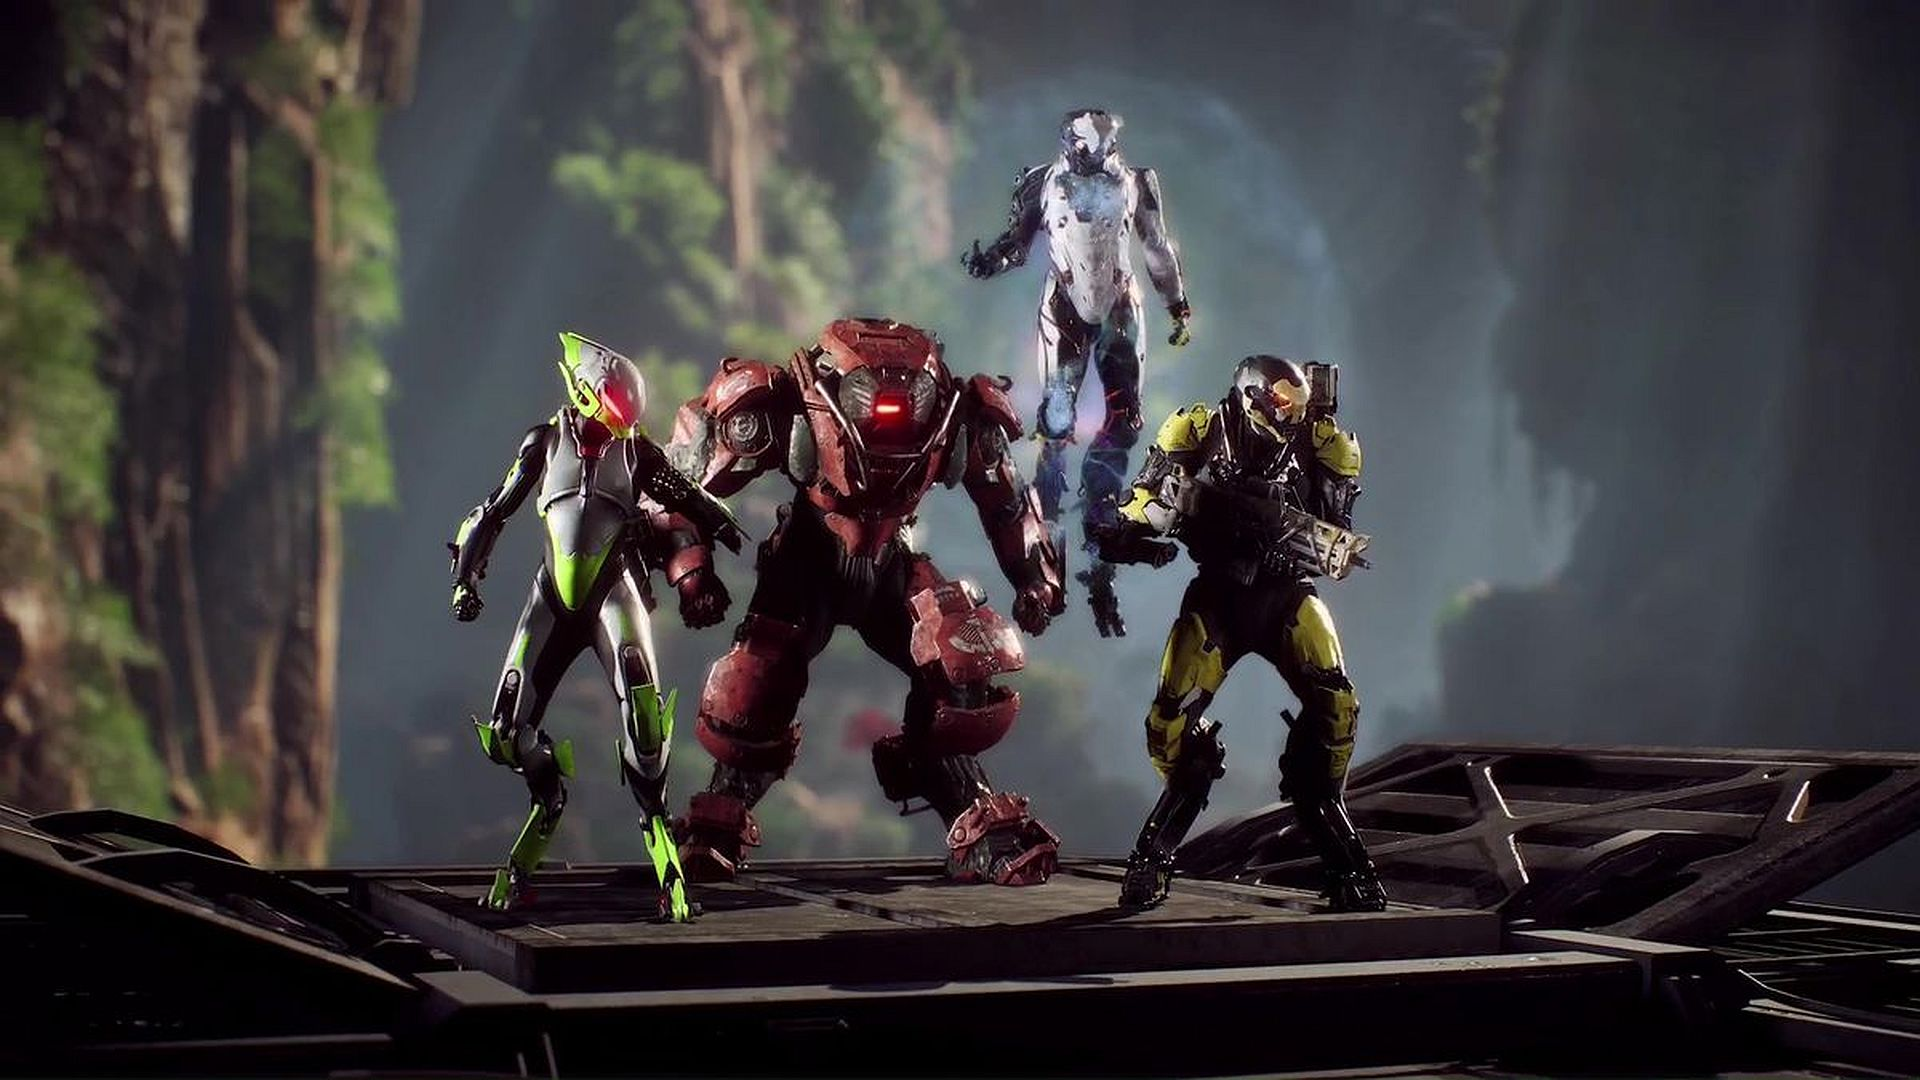 How to customize Javelin in Anthem